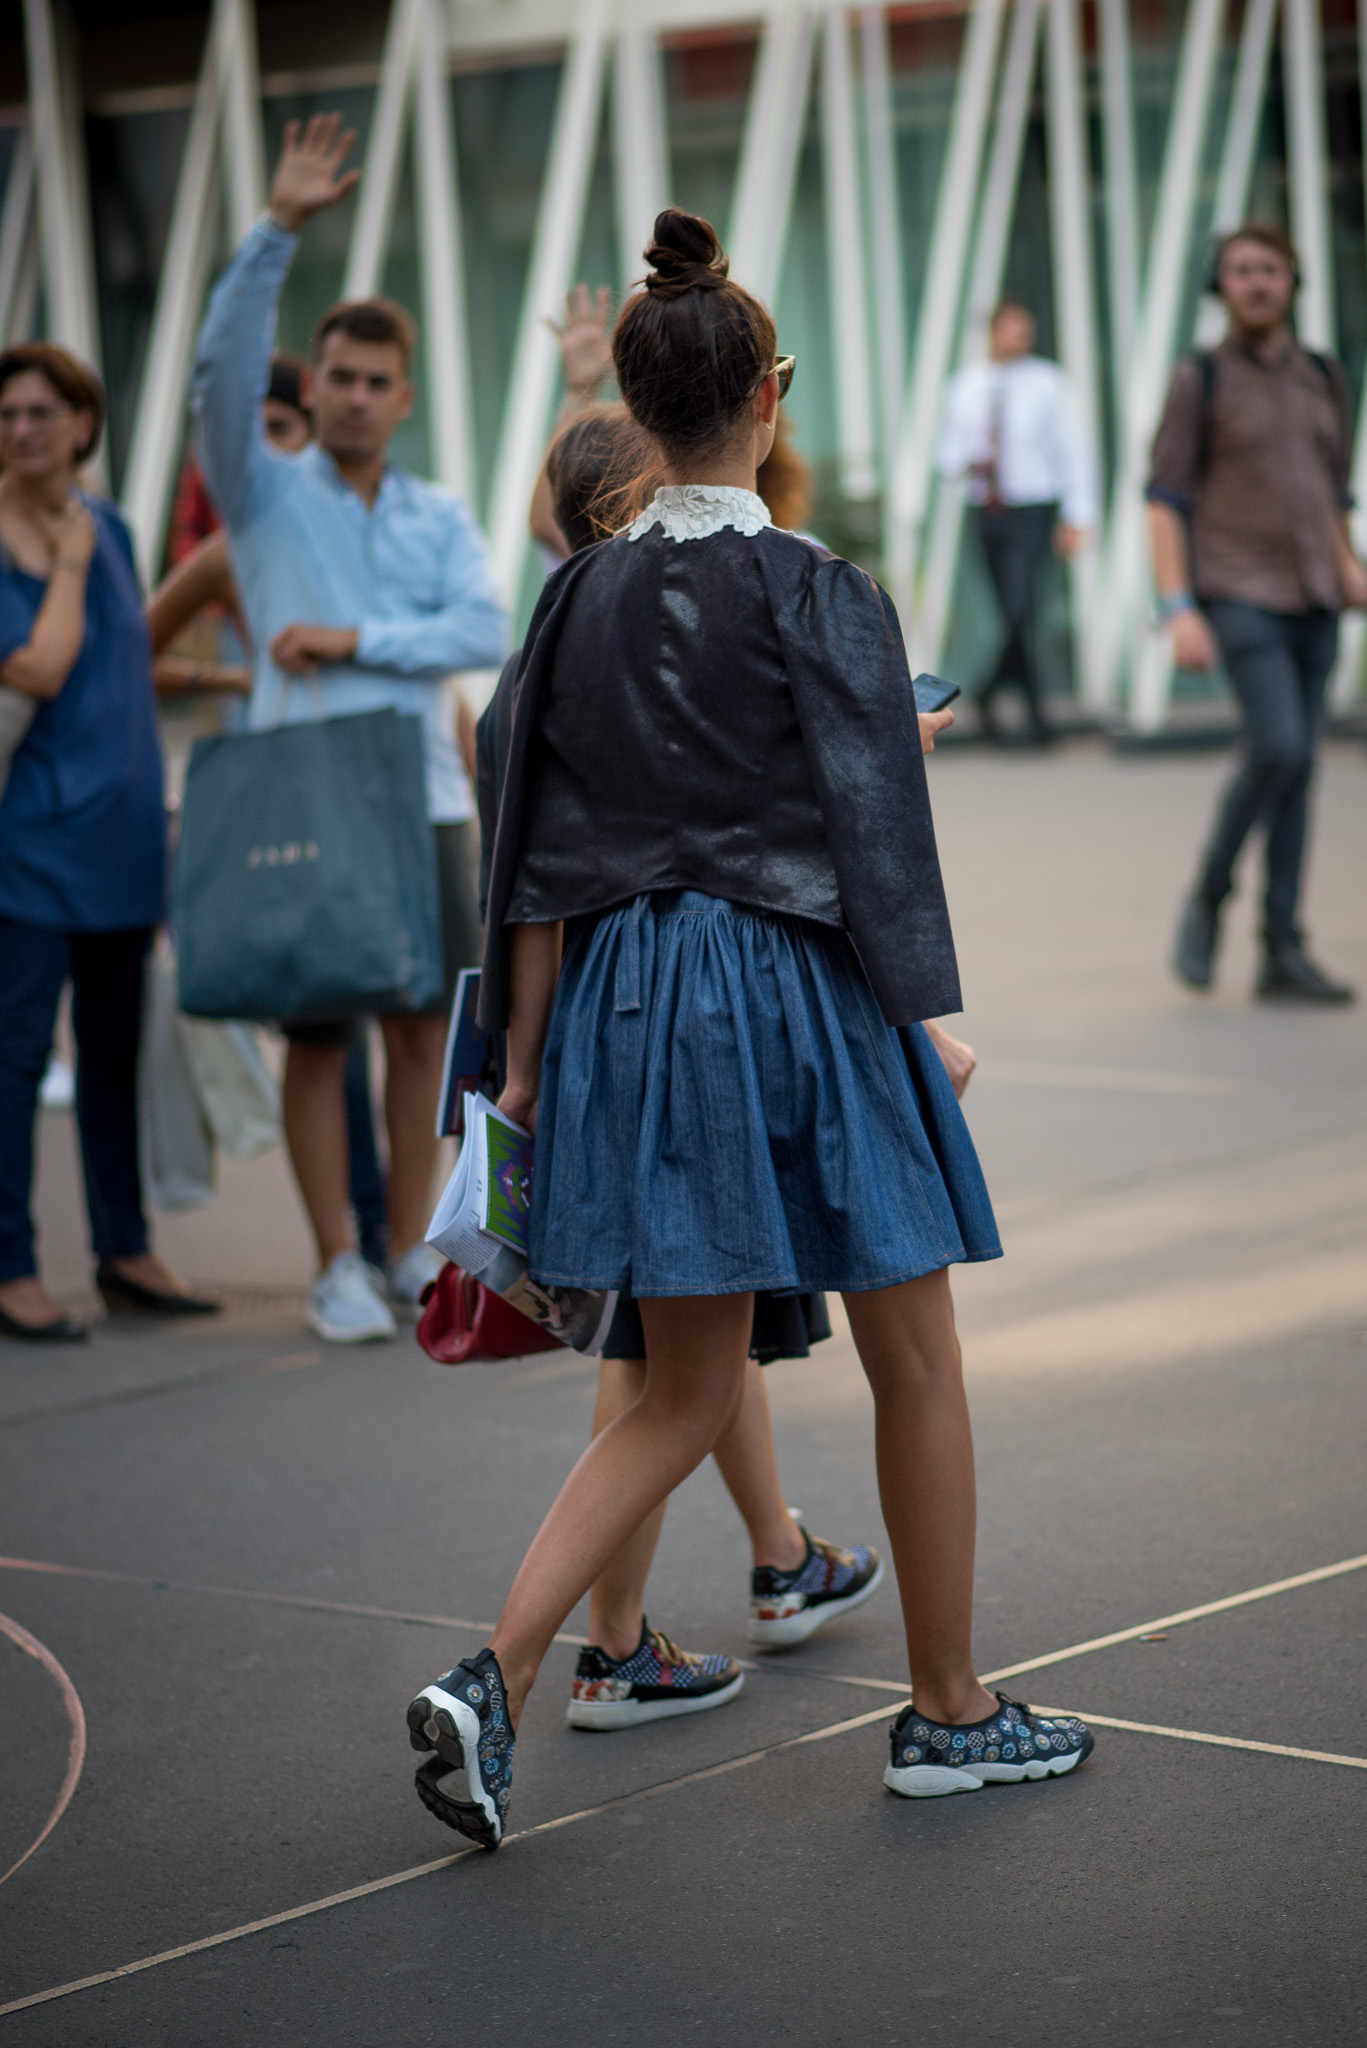 street-style_jil-sander_milan-fashion-week_sept-2016_www-annikasomething-com-15